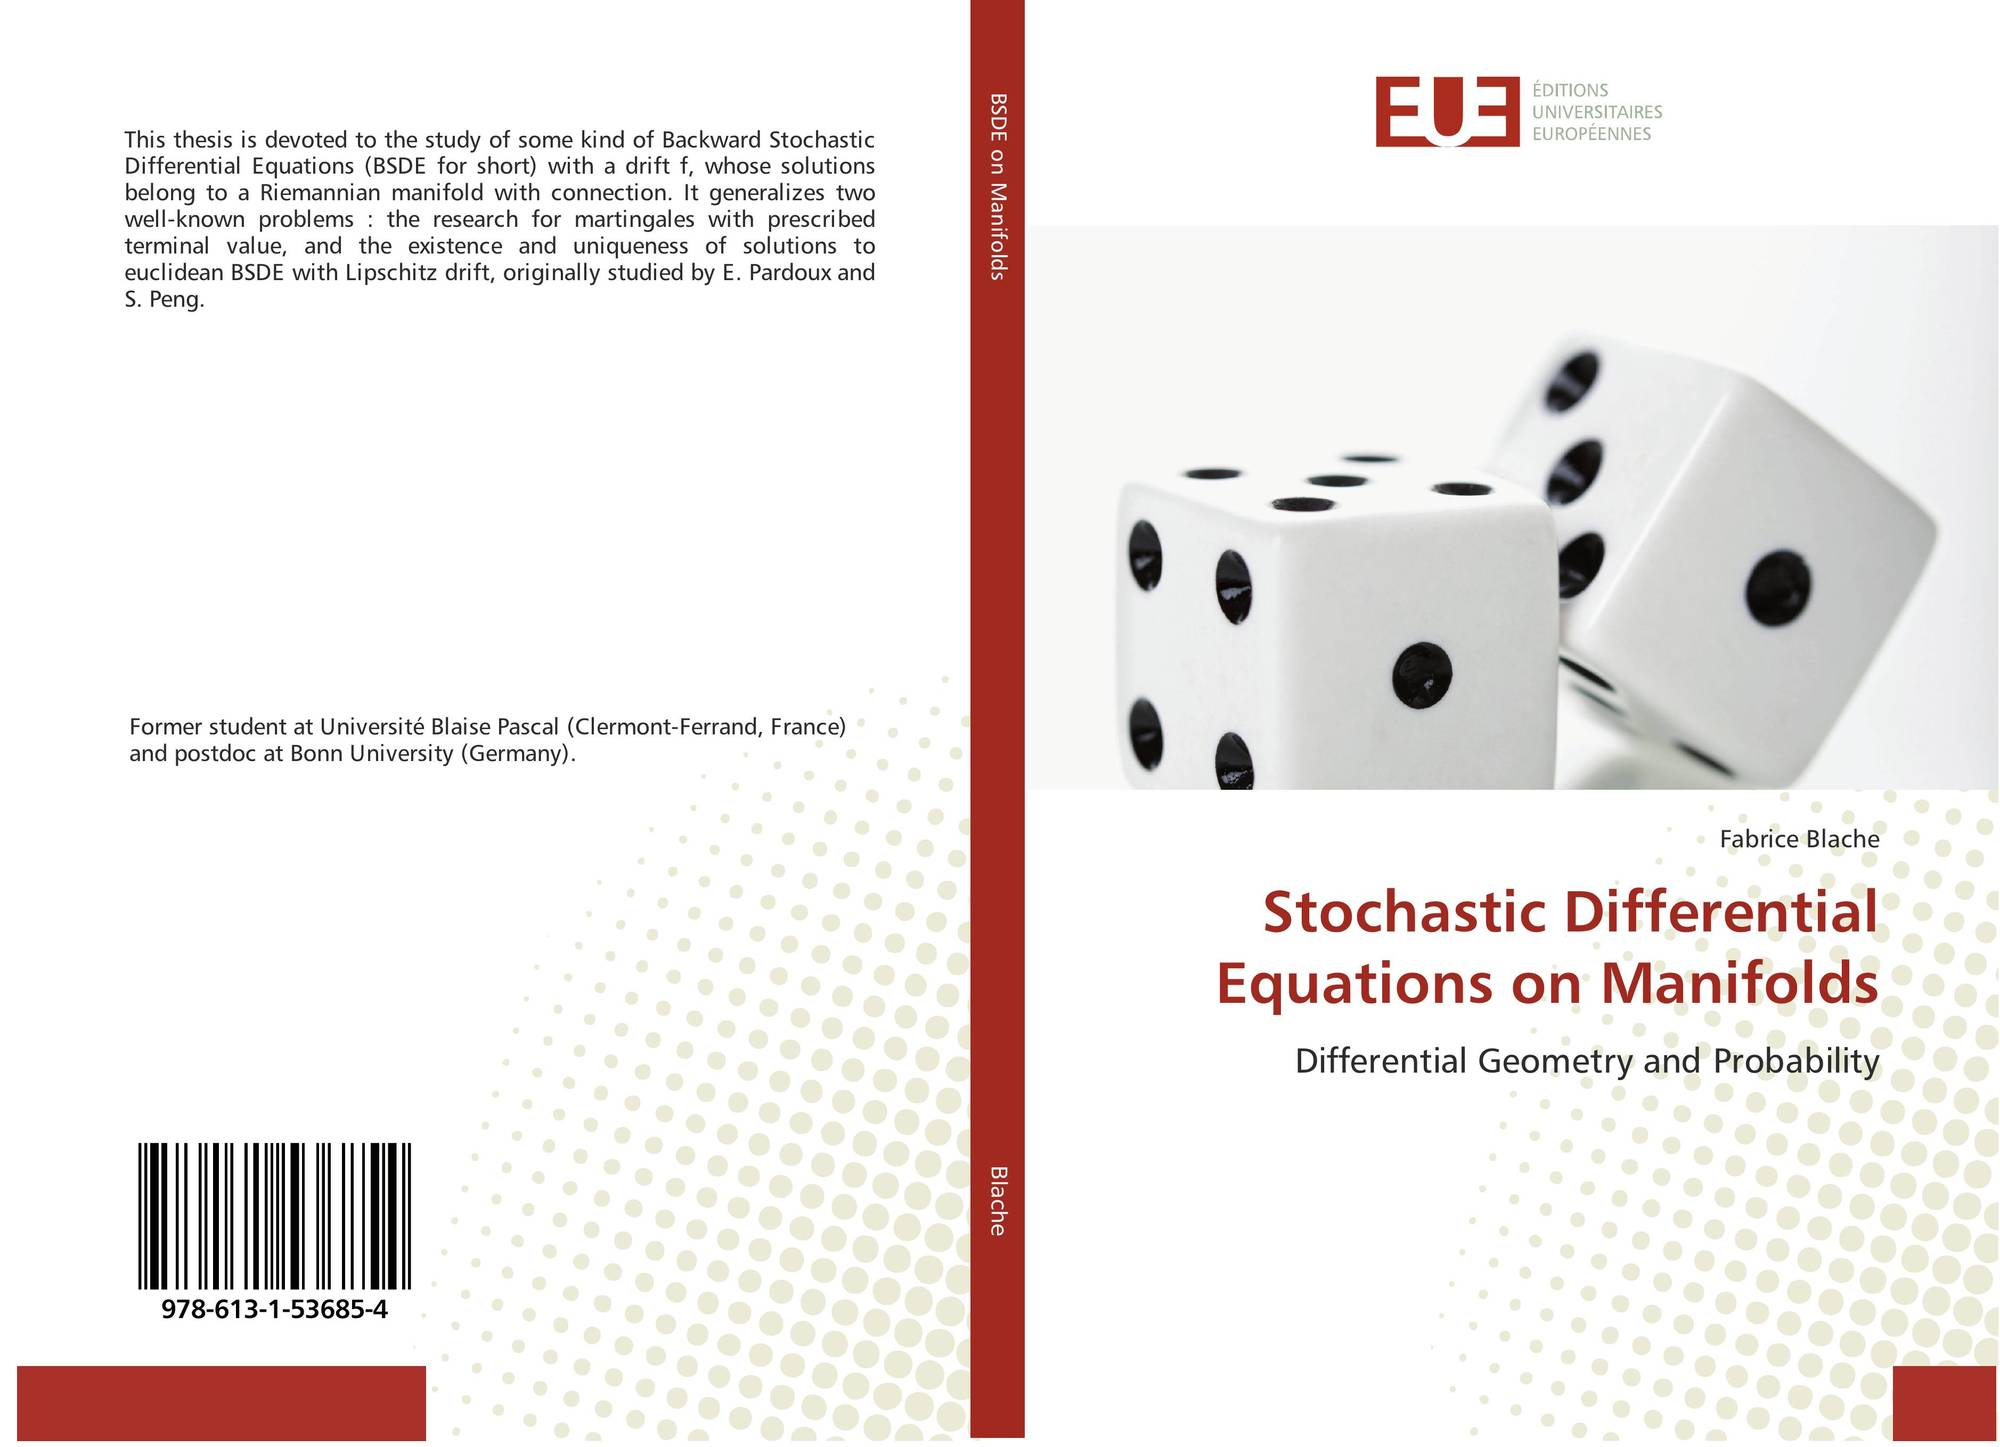 Stochastic Differential Equations on Manifolds, 978-613-1